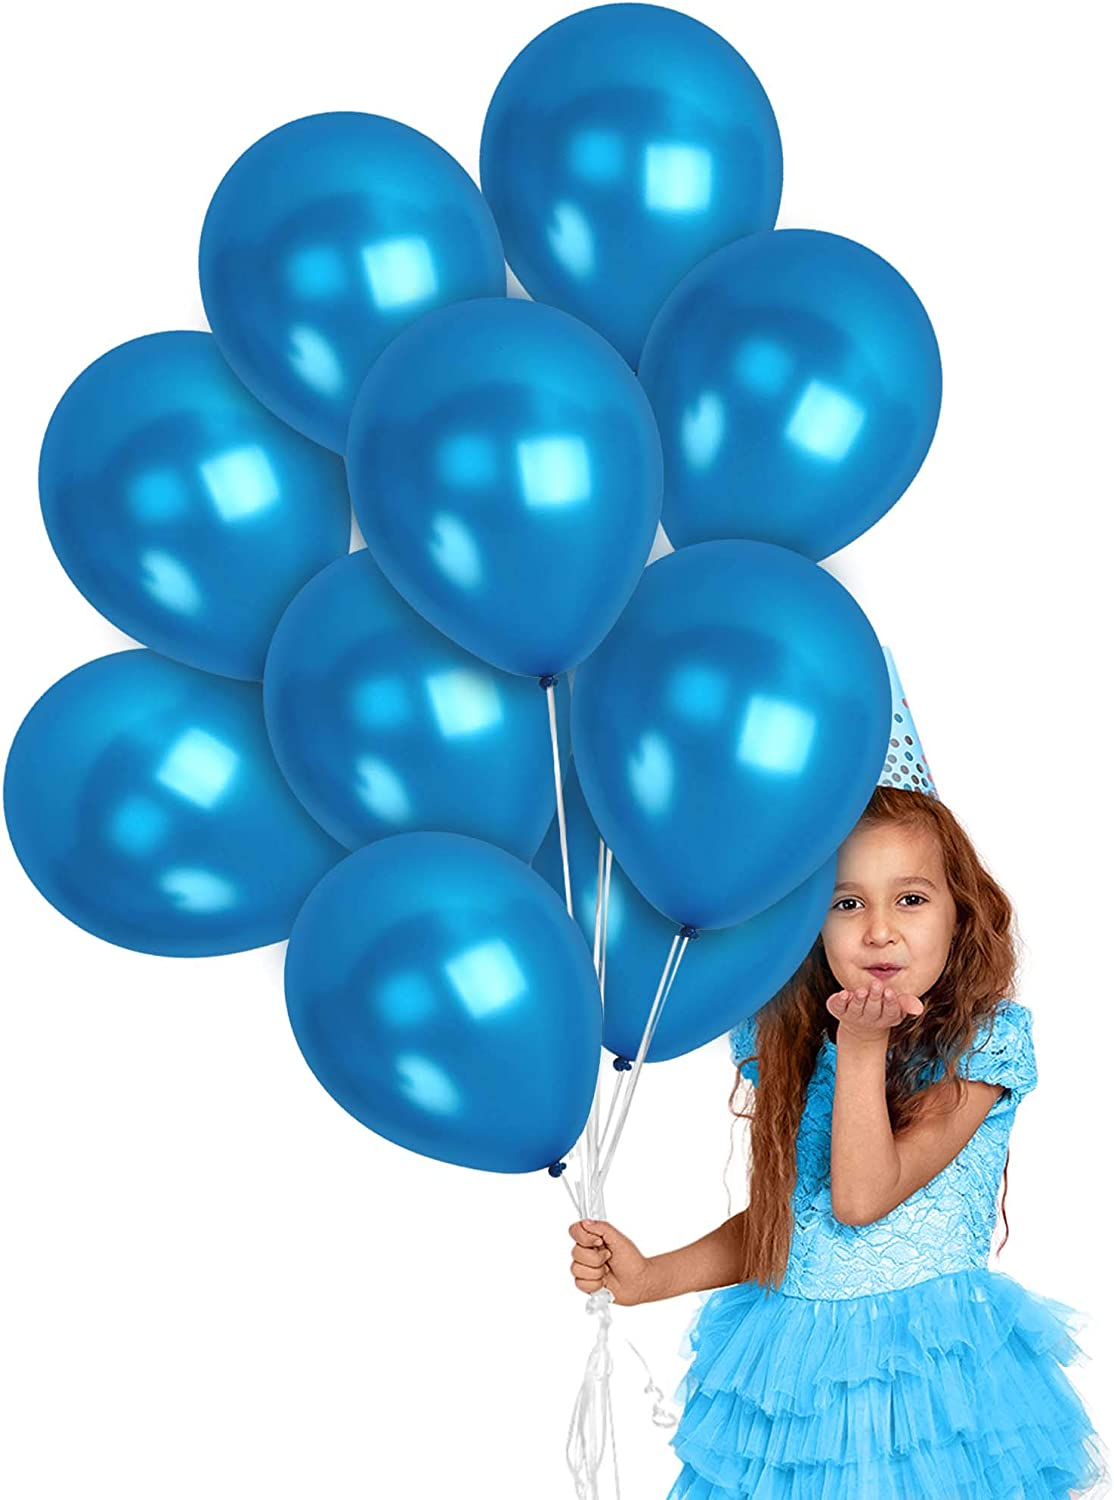 Metallic Royal Blue Balloons 100 Pack - Blue Metallic Balloons 12 Inch for Mermaid Birthday Baby Shower Party the Under Sea Party Graduation Decorations